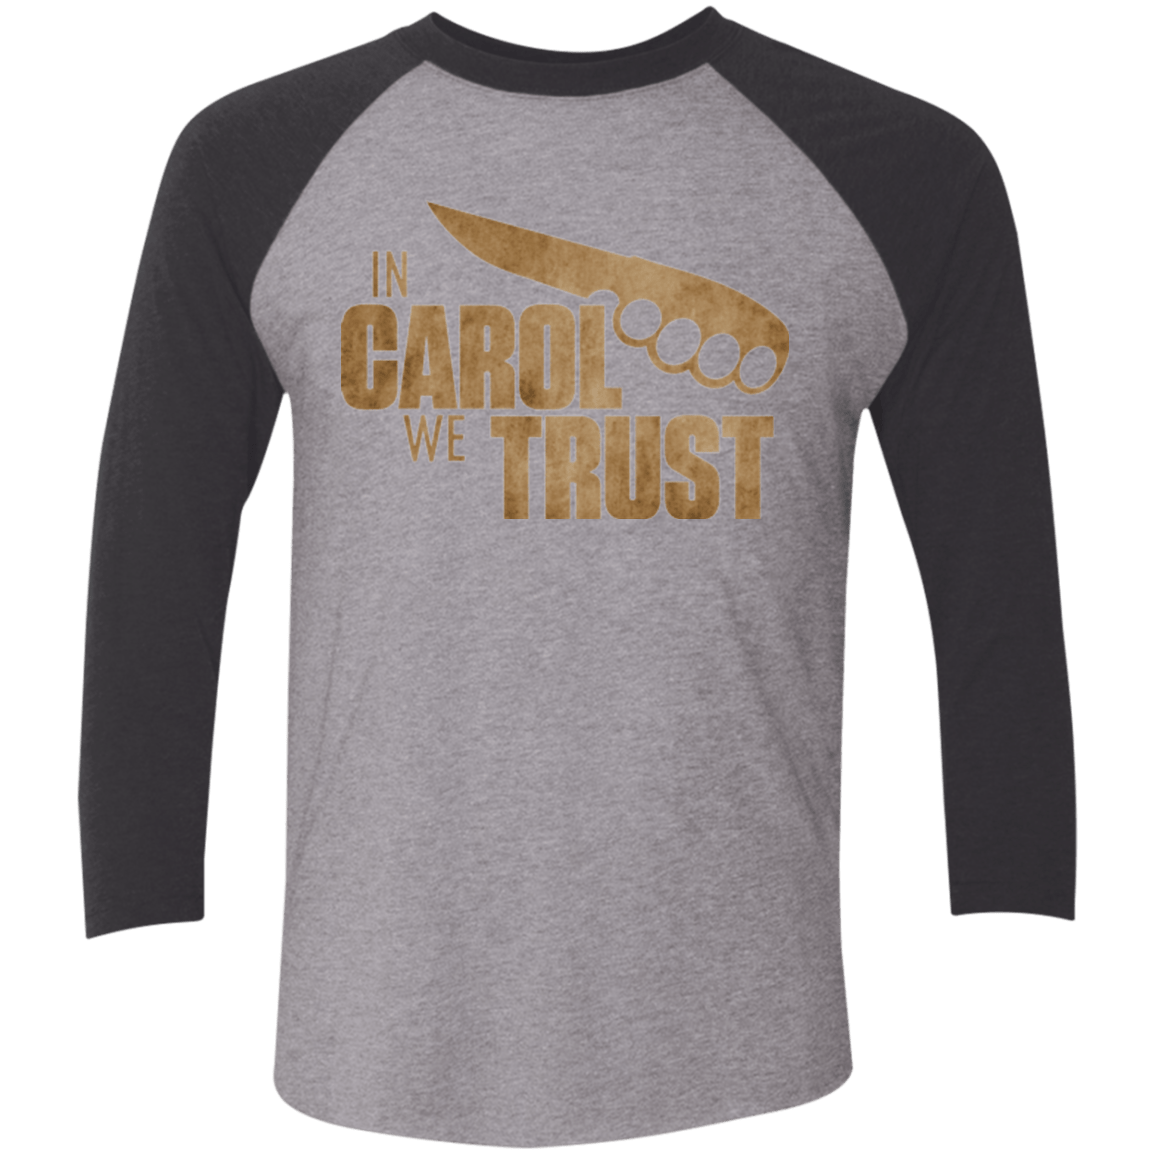 T-Shirts Premium Heather/ Vintage Black / X-Small In Carol We Trust Triblend 3/4 Sleeve